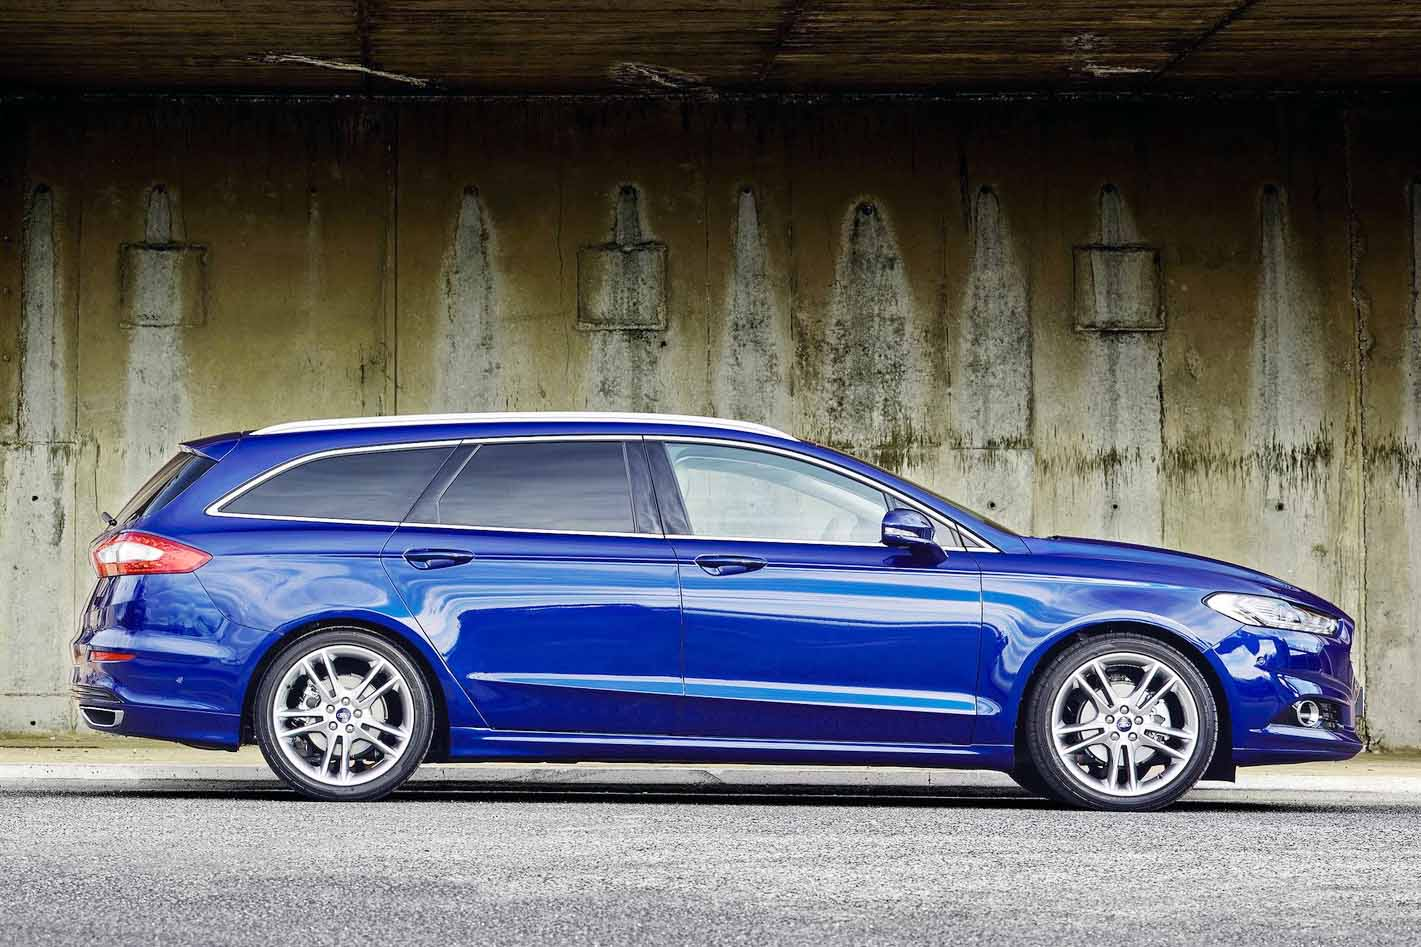 Ford Mondeo Leasing DK